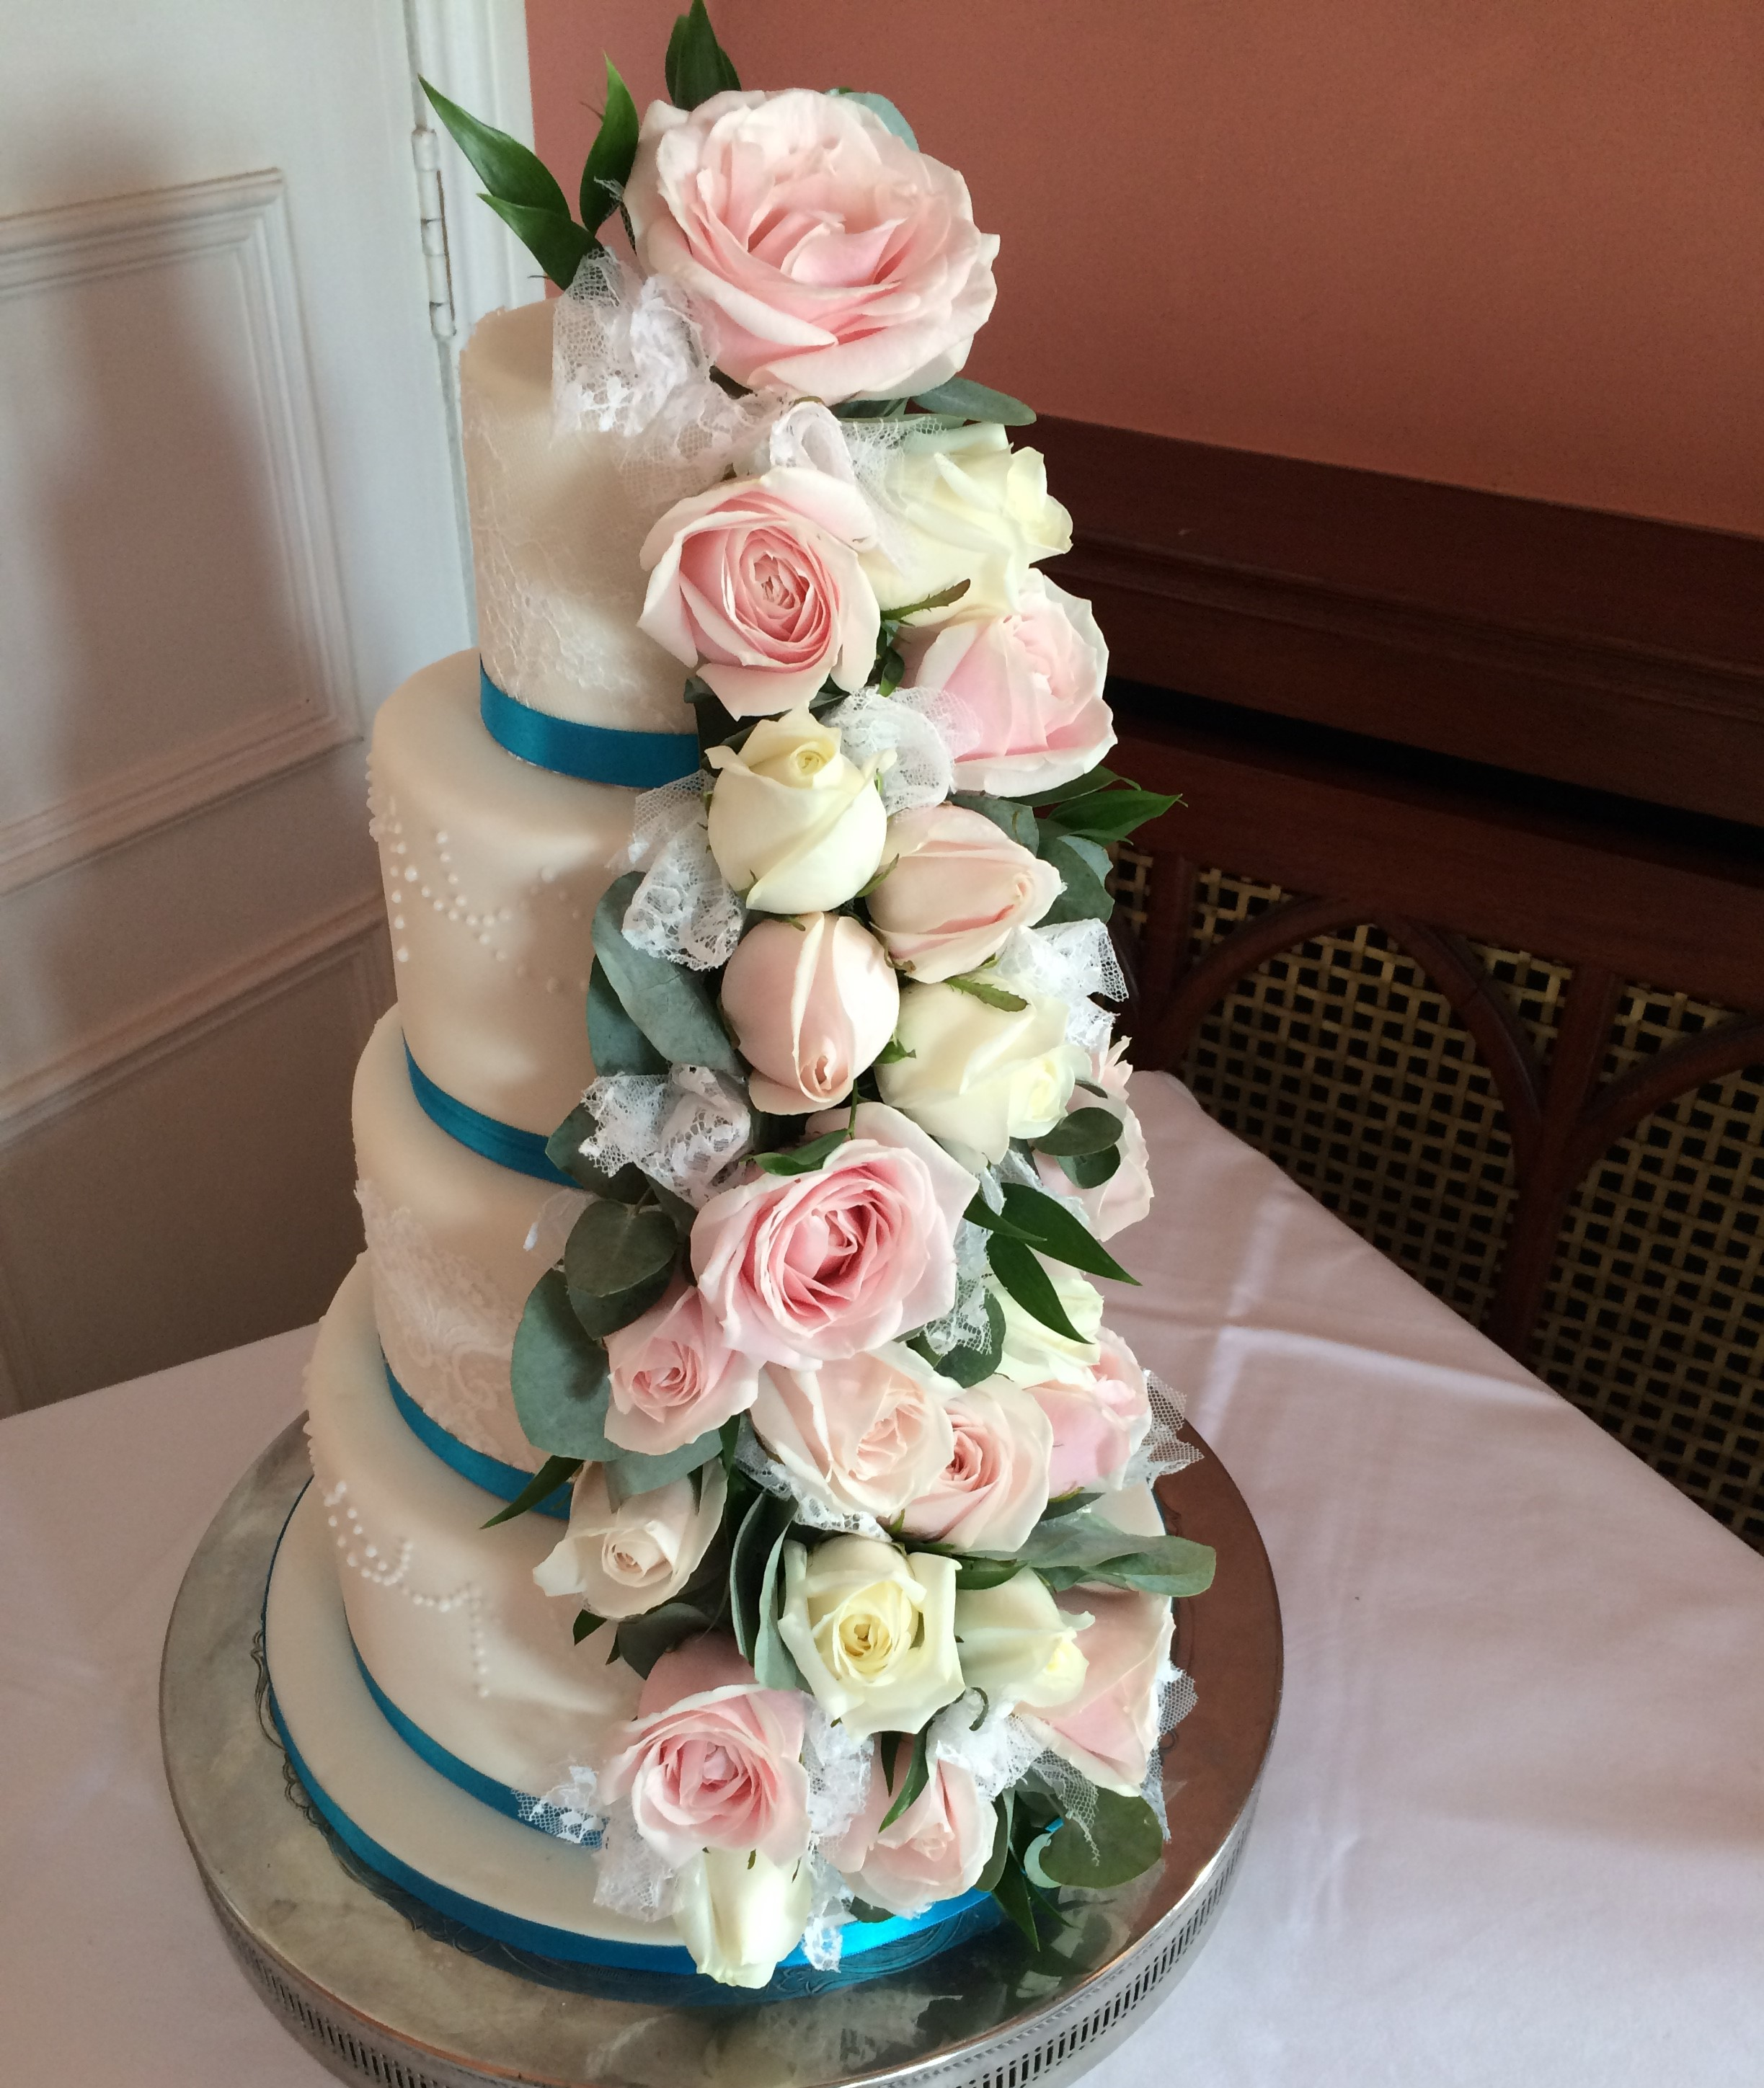 Waterfall flowers down one side of the cake in blush pink and ivory roses cake flowers 4